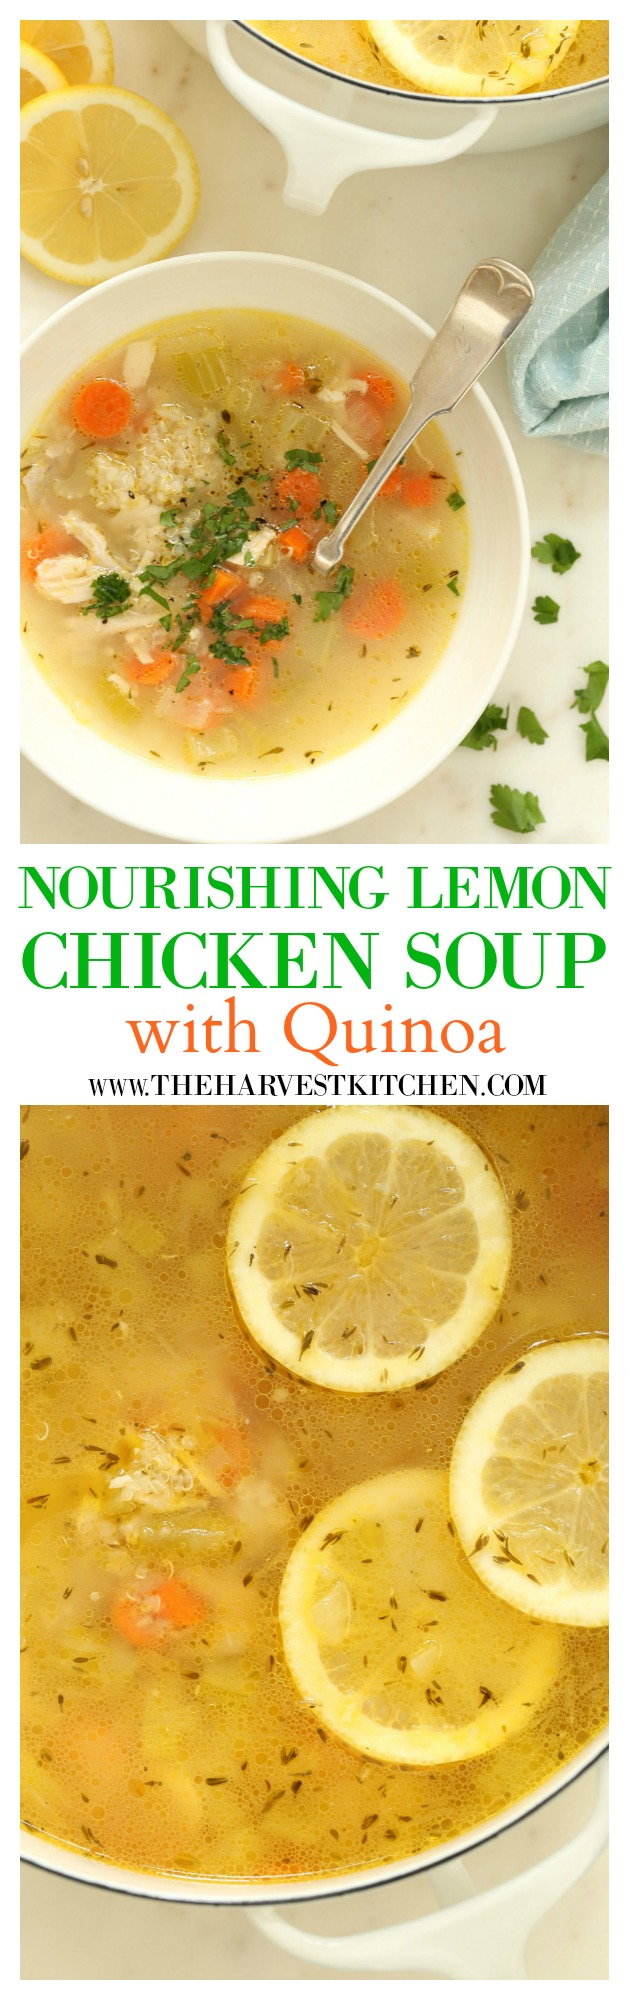 Nourishing-Lemon-Chicken-Quinoa-Soup